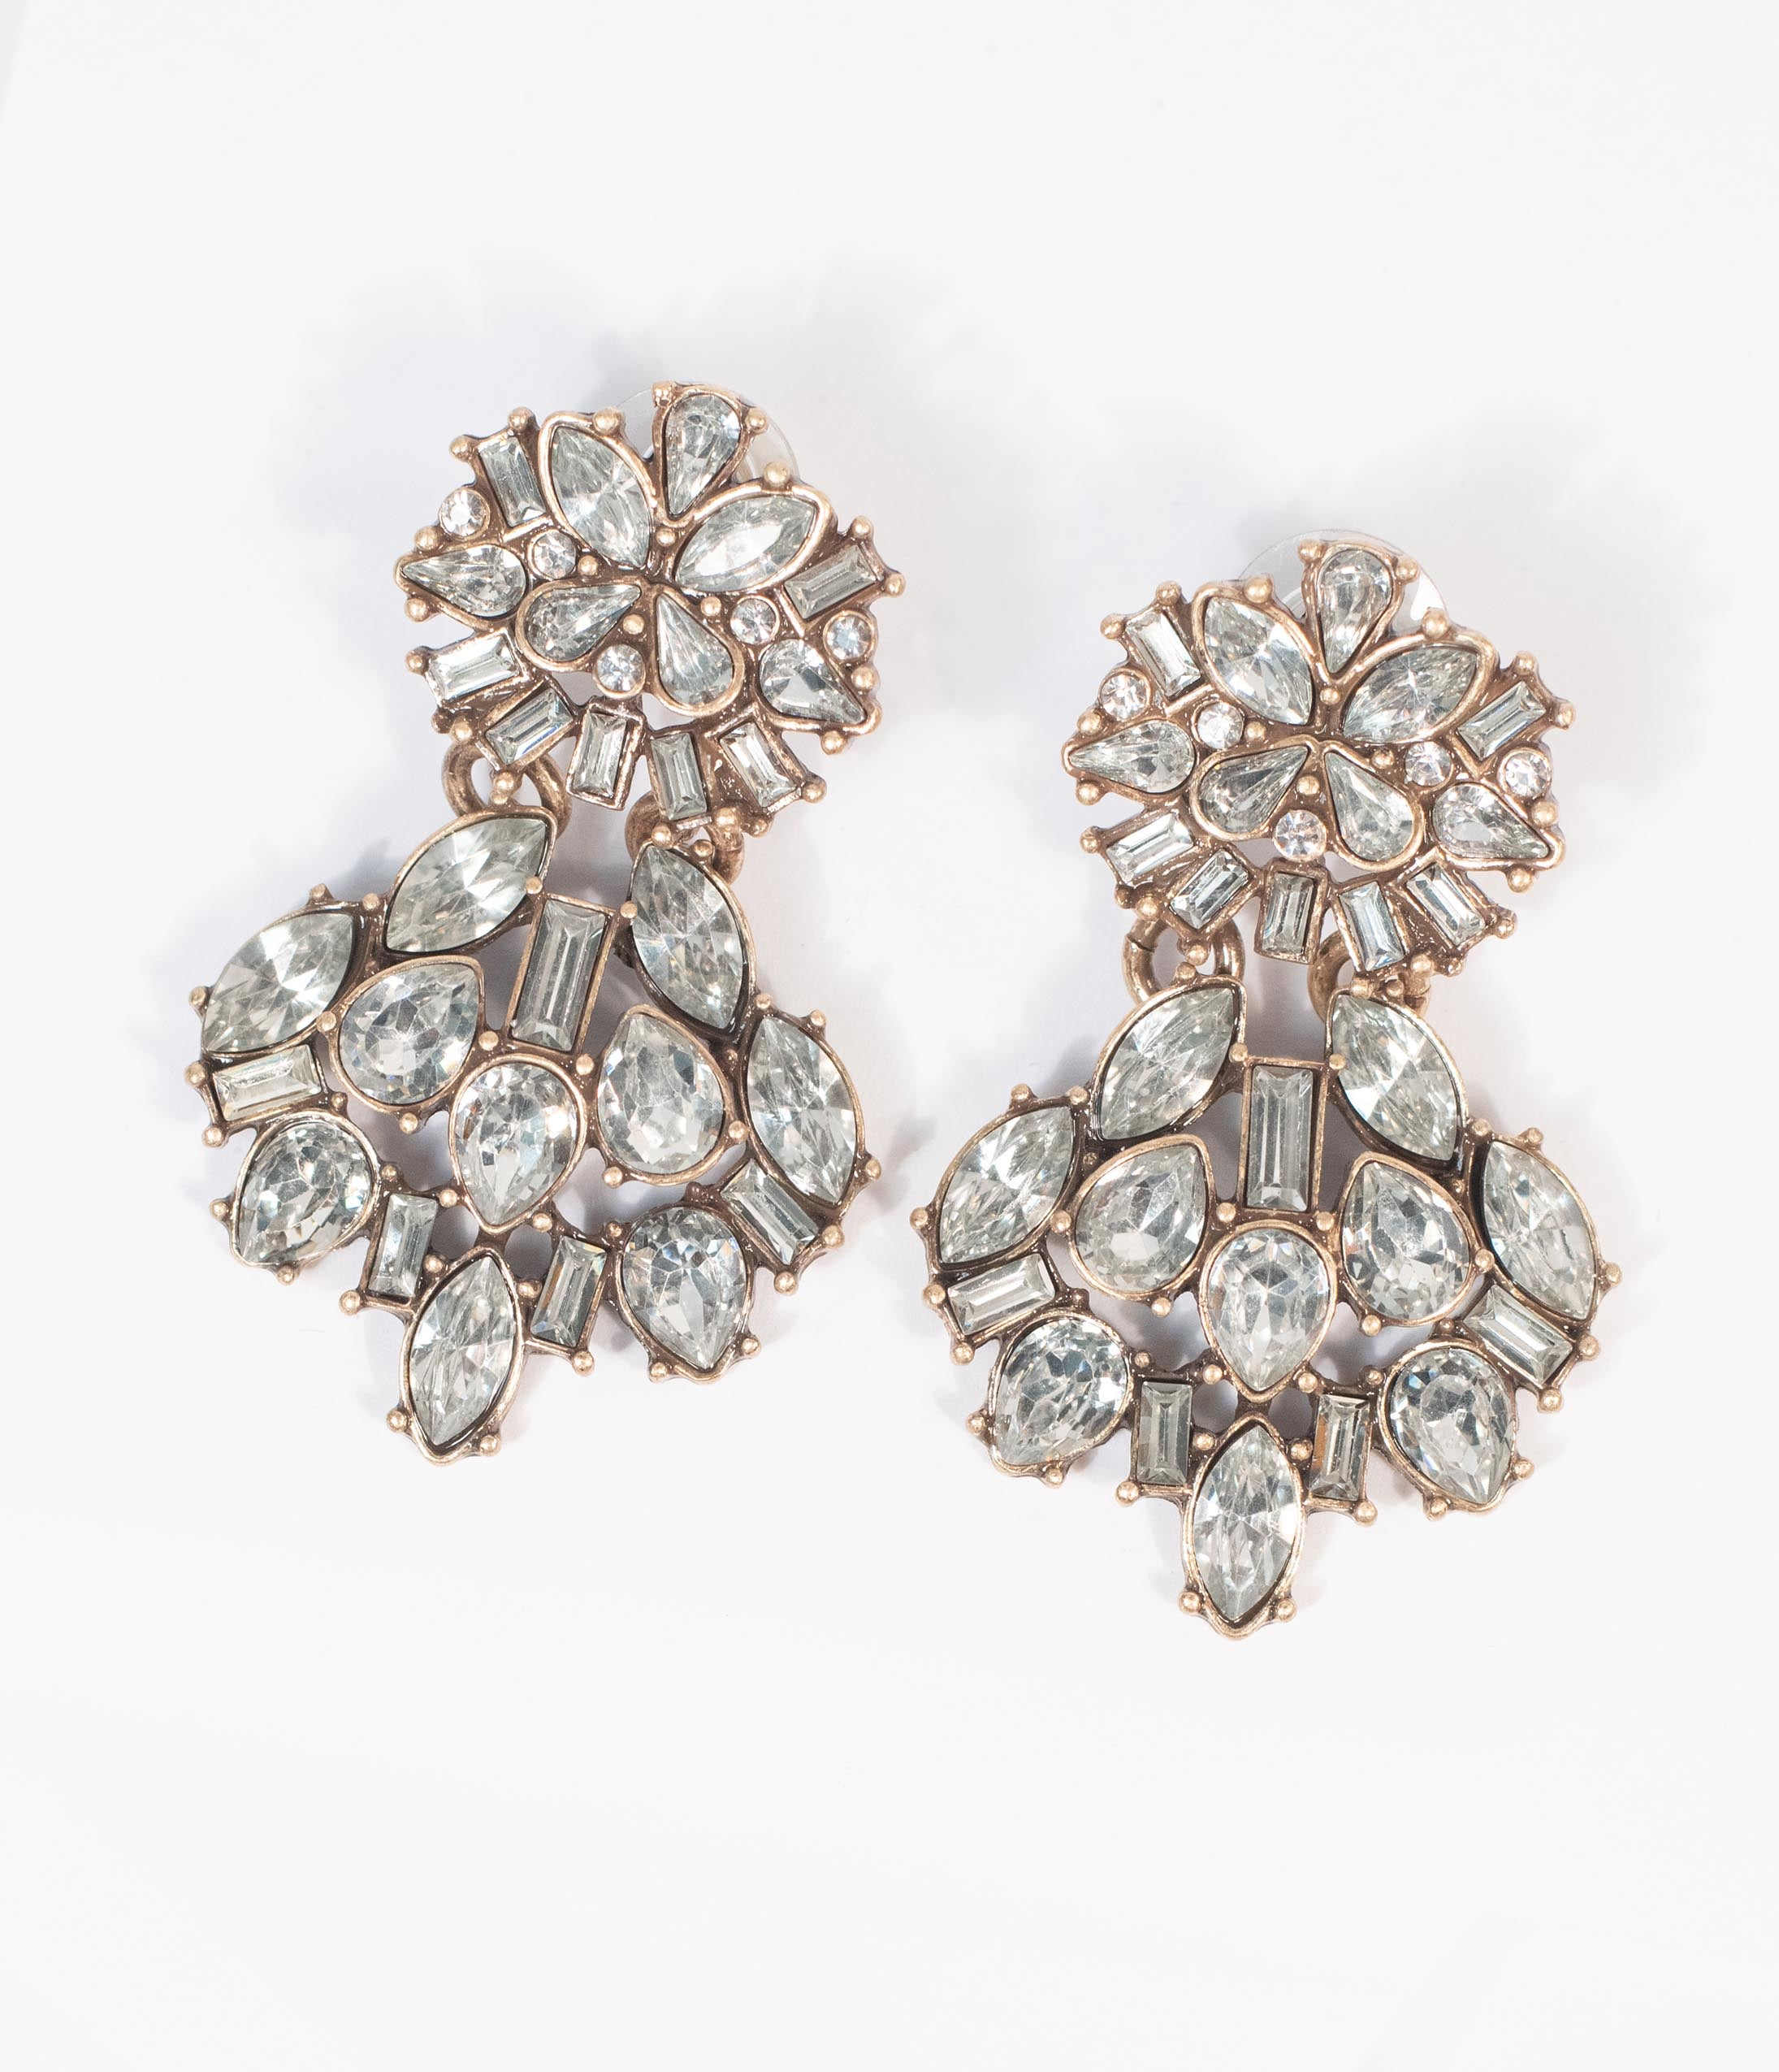 Vintage Style Jewelry, Retro Jewelry Deco Style Gold  Silver Rhinestone Drop Earrings $22.00 AT vintagedancer.com